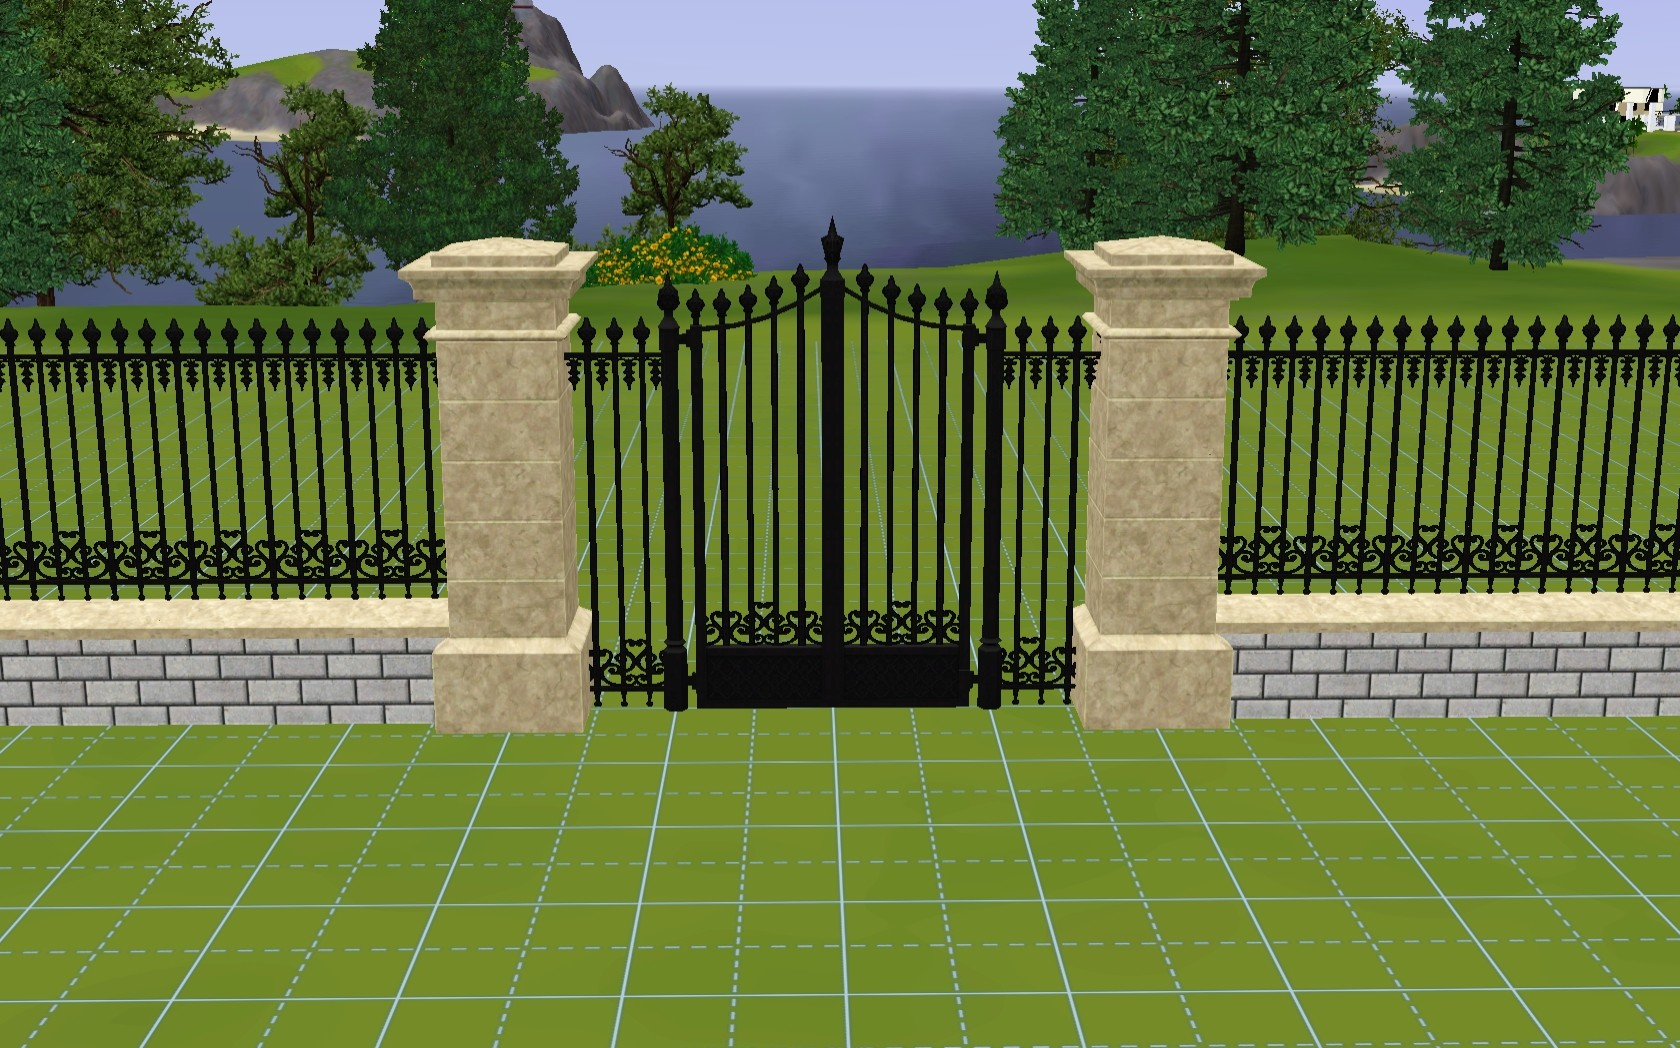 garage expansion ideas - Mod The Sims Wrought Iron Gate and Fences